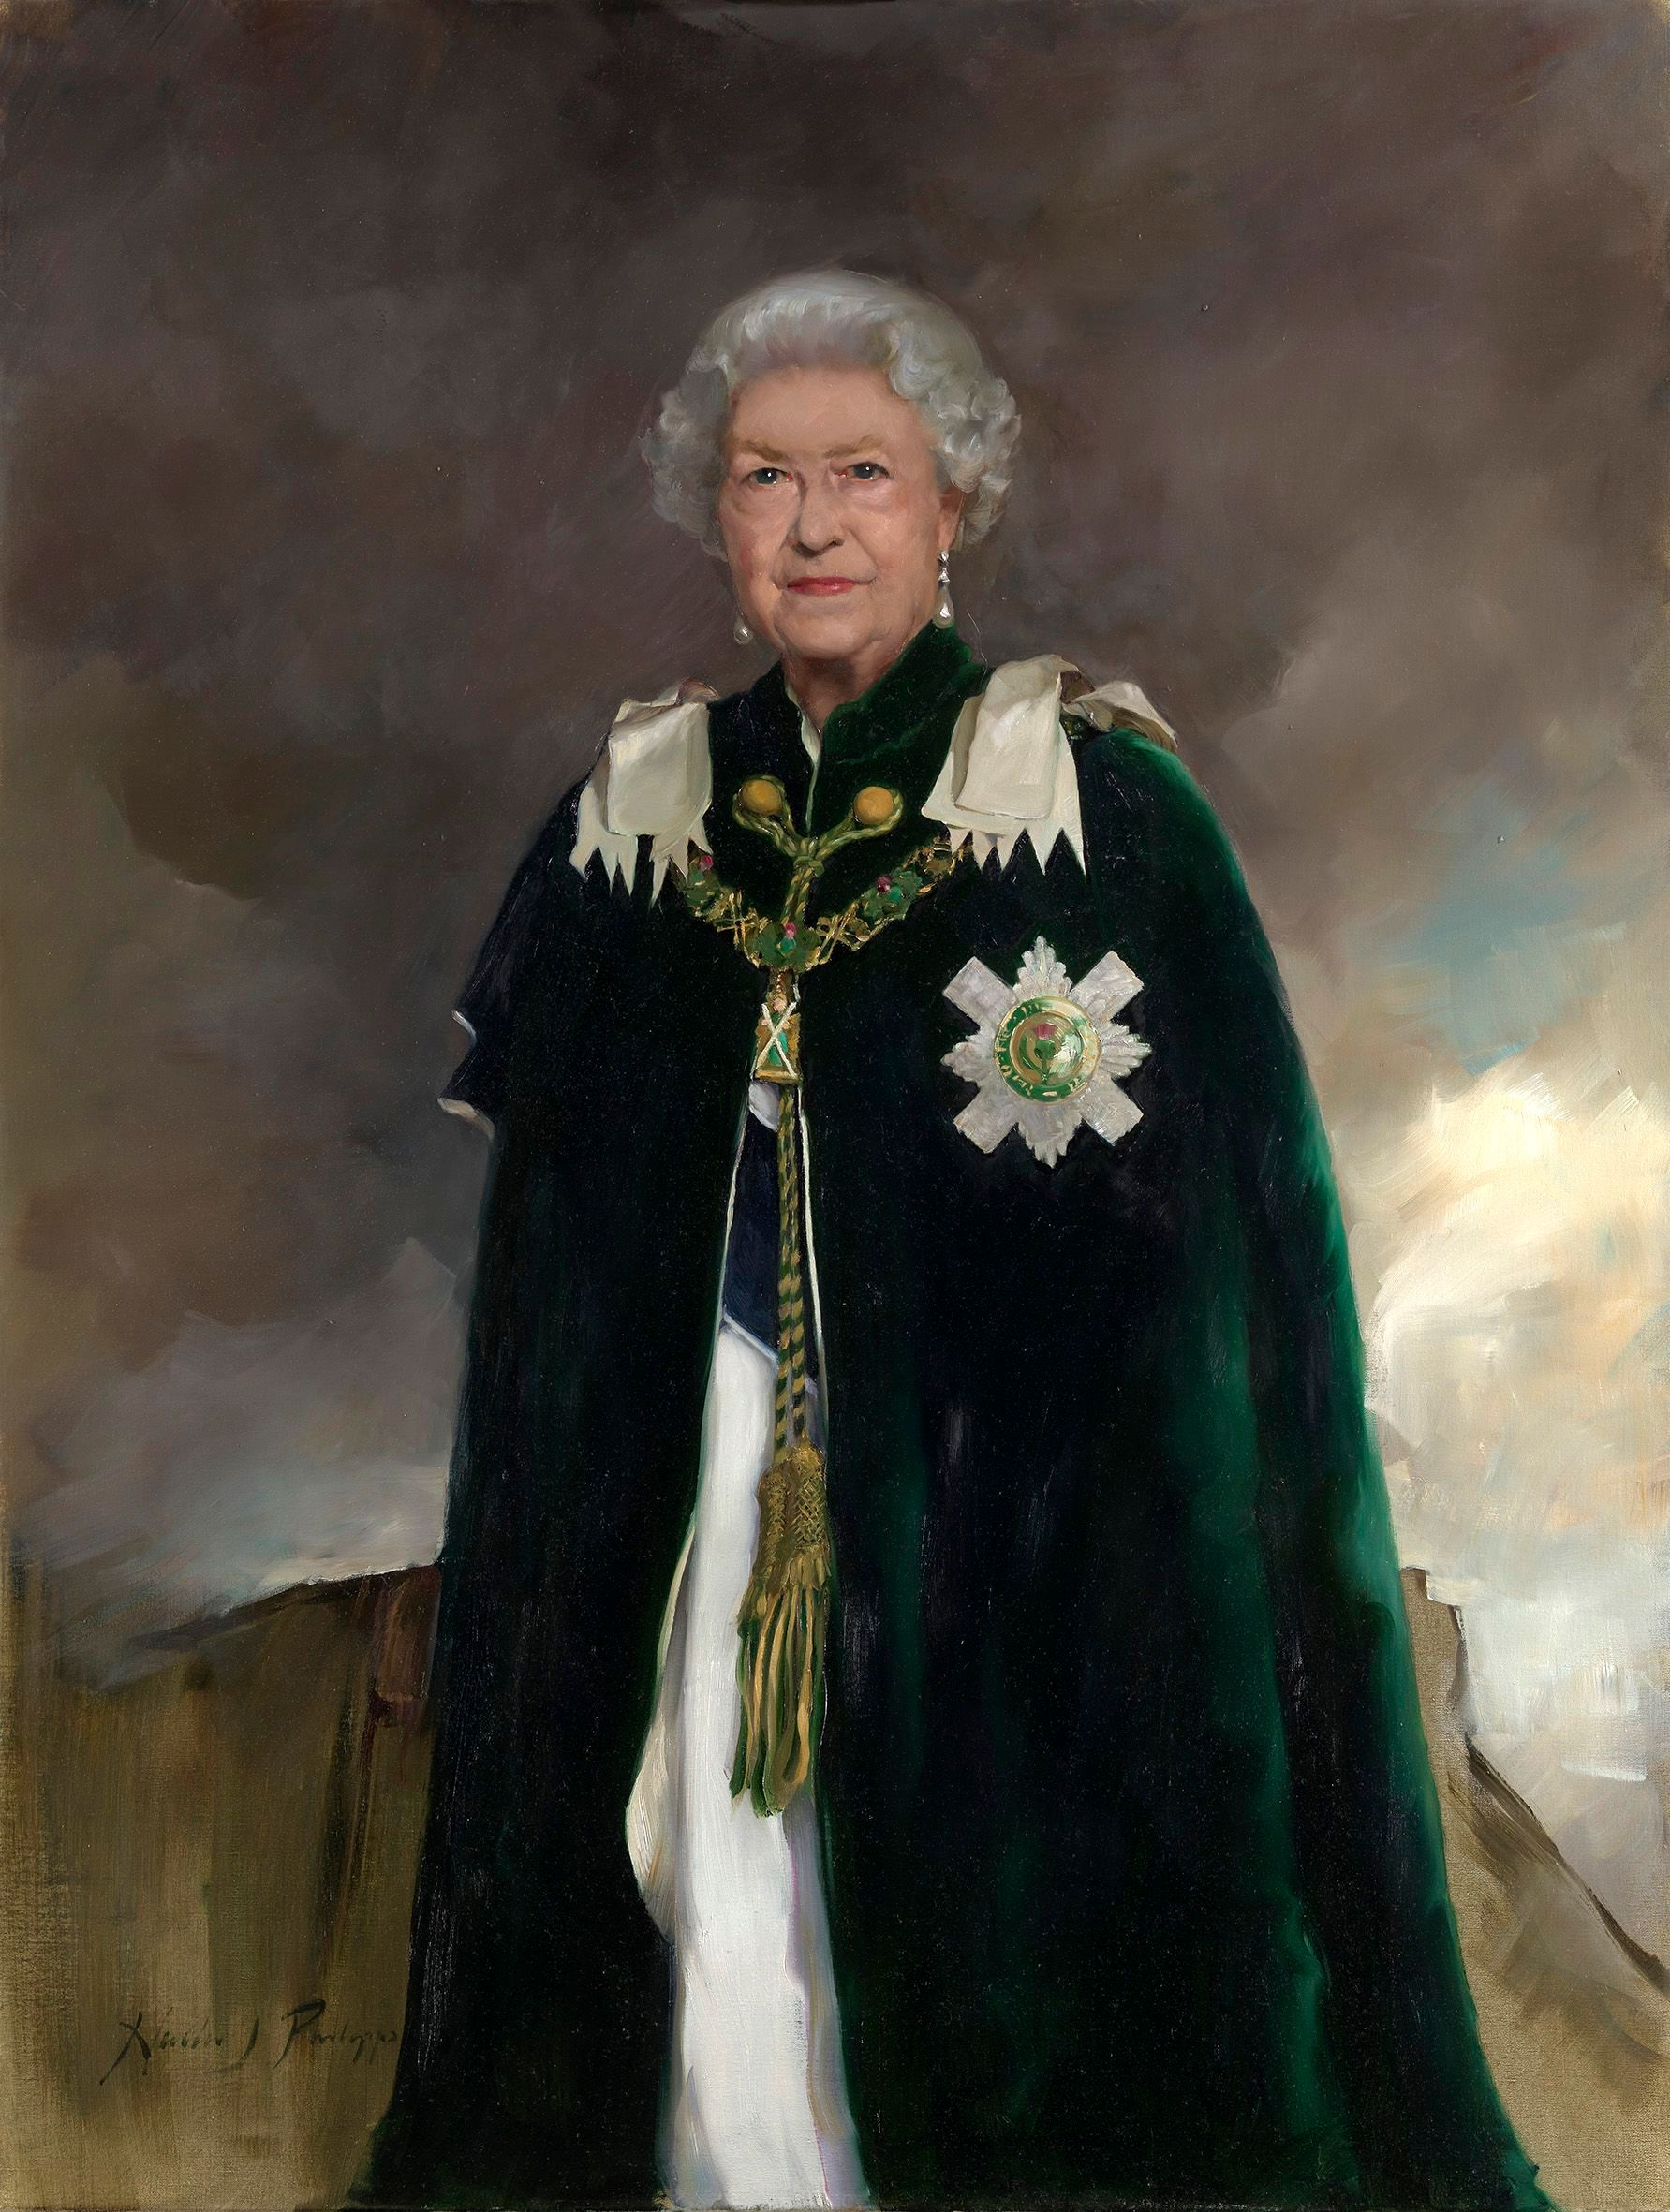 An undated handout photo made available by the British Royal Collection on Nov. 29, 2018 shows a new portrait of Her Majesty Queen Elizabeth II by painter Nicky Philipps. It depicts the 92-year-old queen wearing grand ceremonial robes and an Order of the Thistle collar. The painting was placed in the Royal Dining Room at Holyrood House in Edinburgh, Scotland.